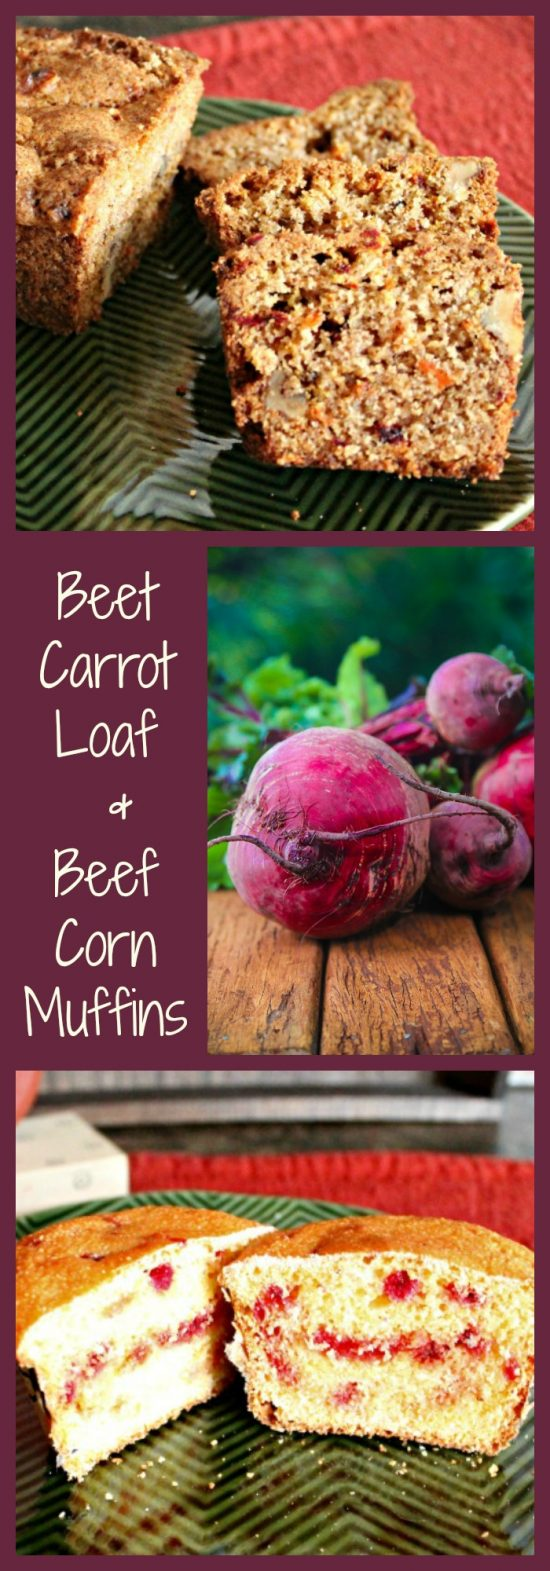 Beet, Loaf, Muffin, Baking, Fall